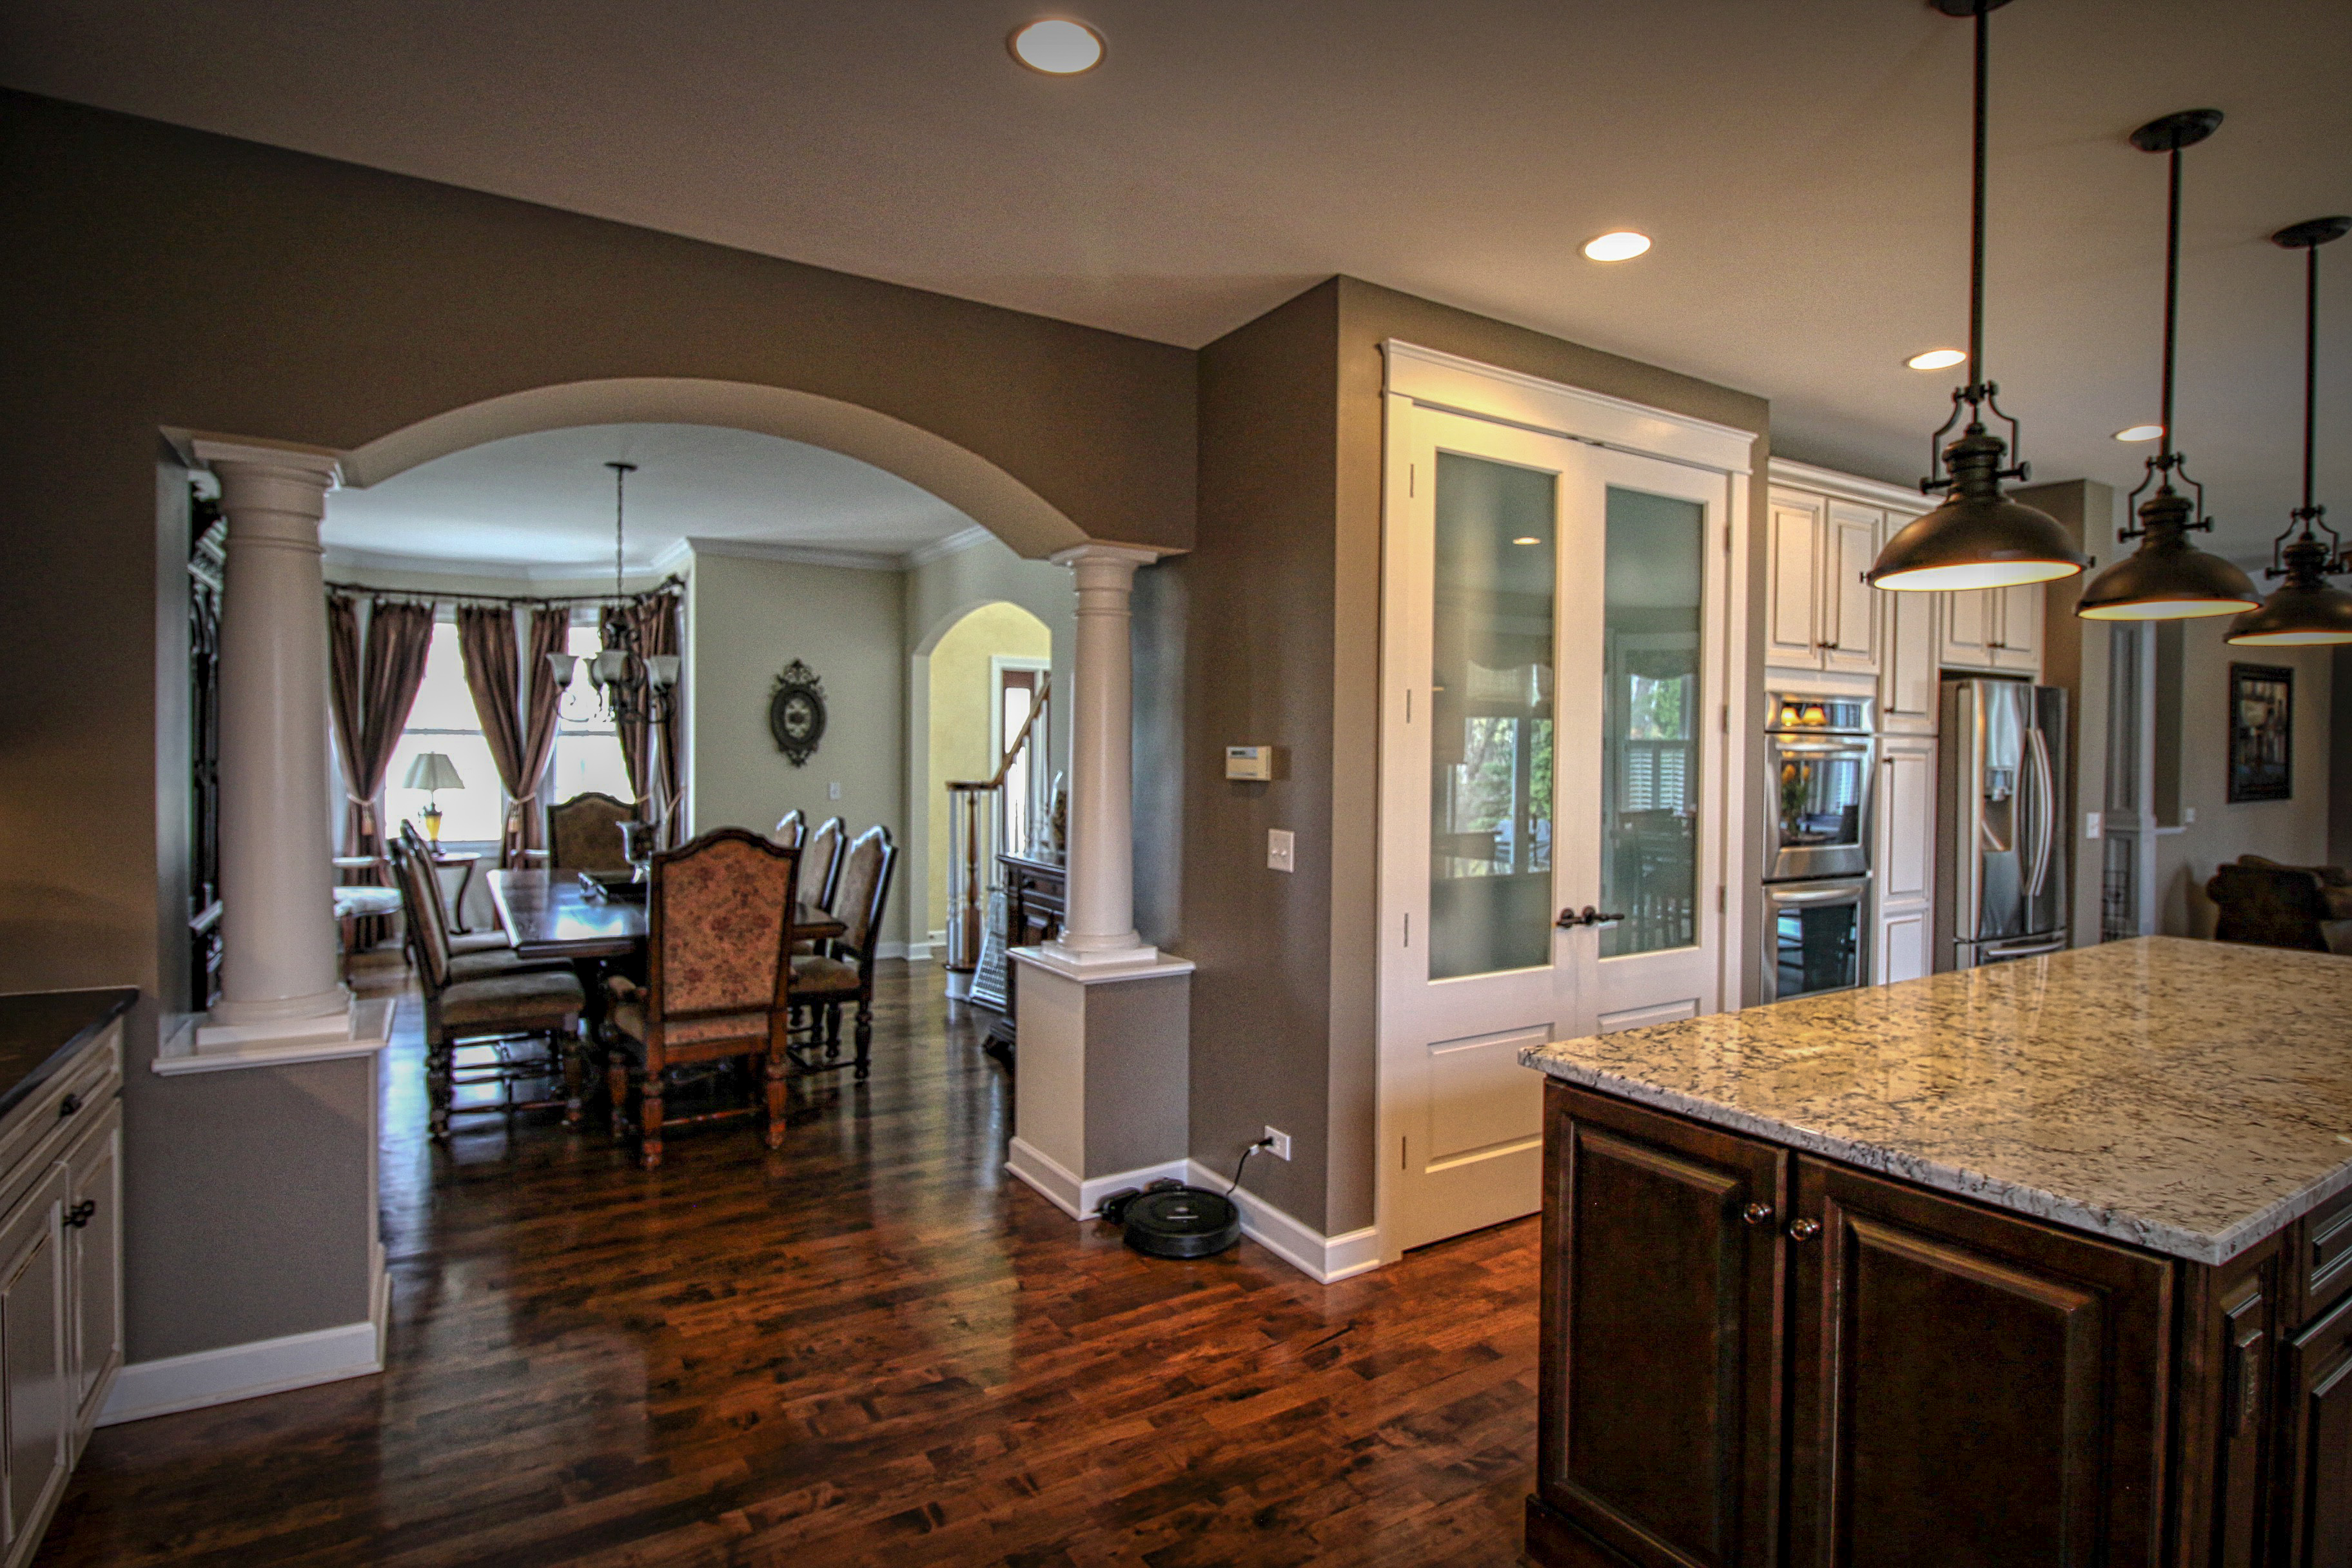 Remodel with Archways and Columns